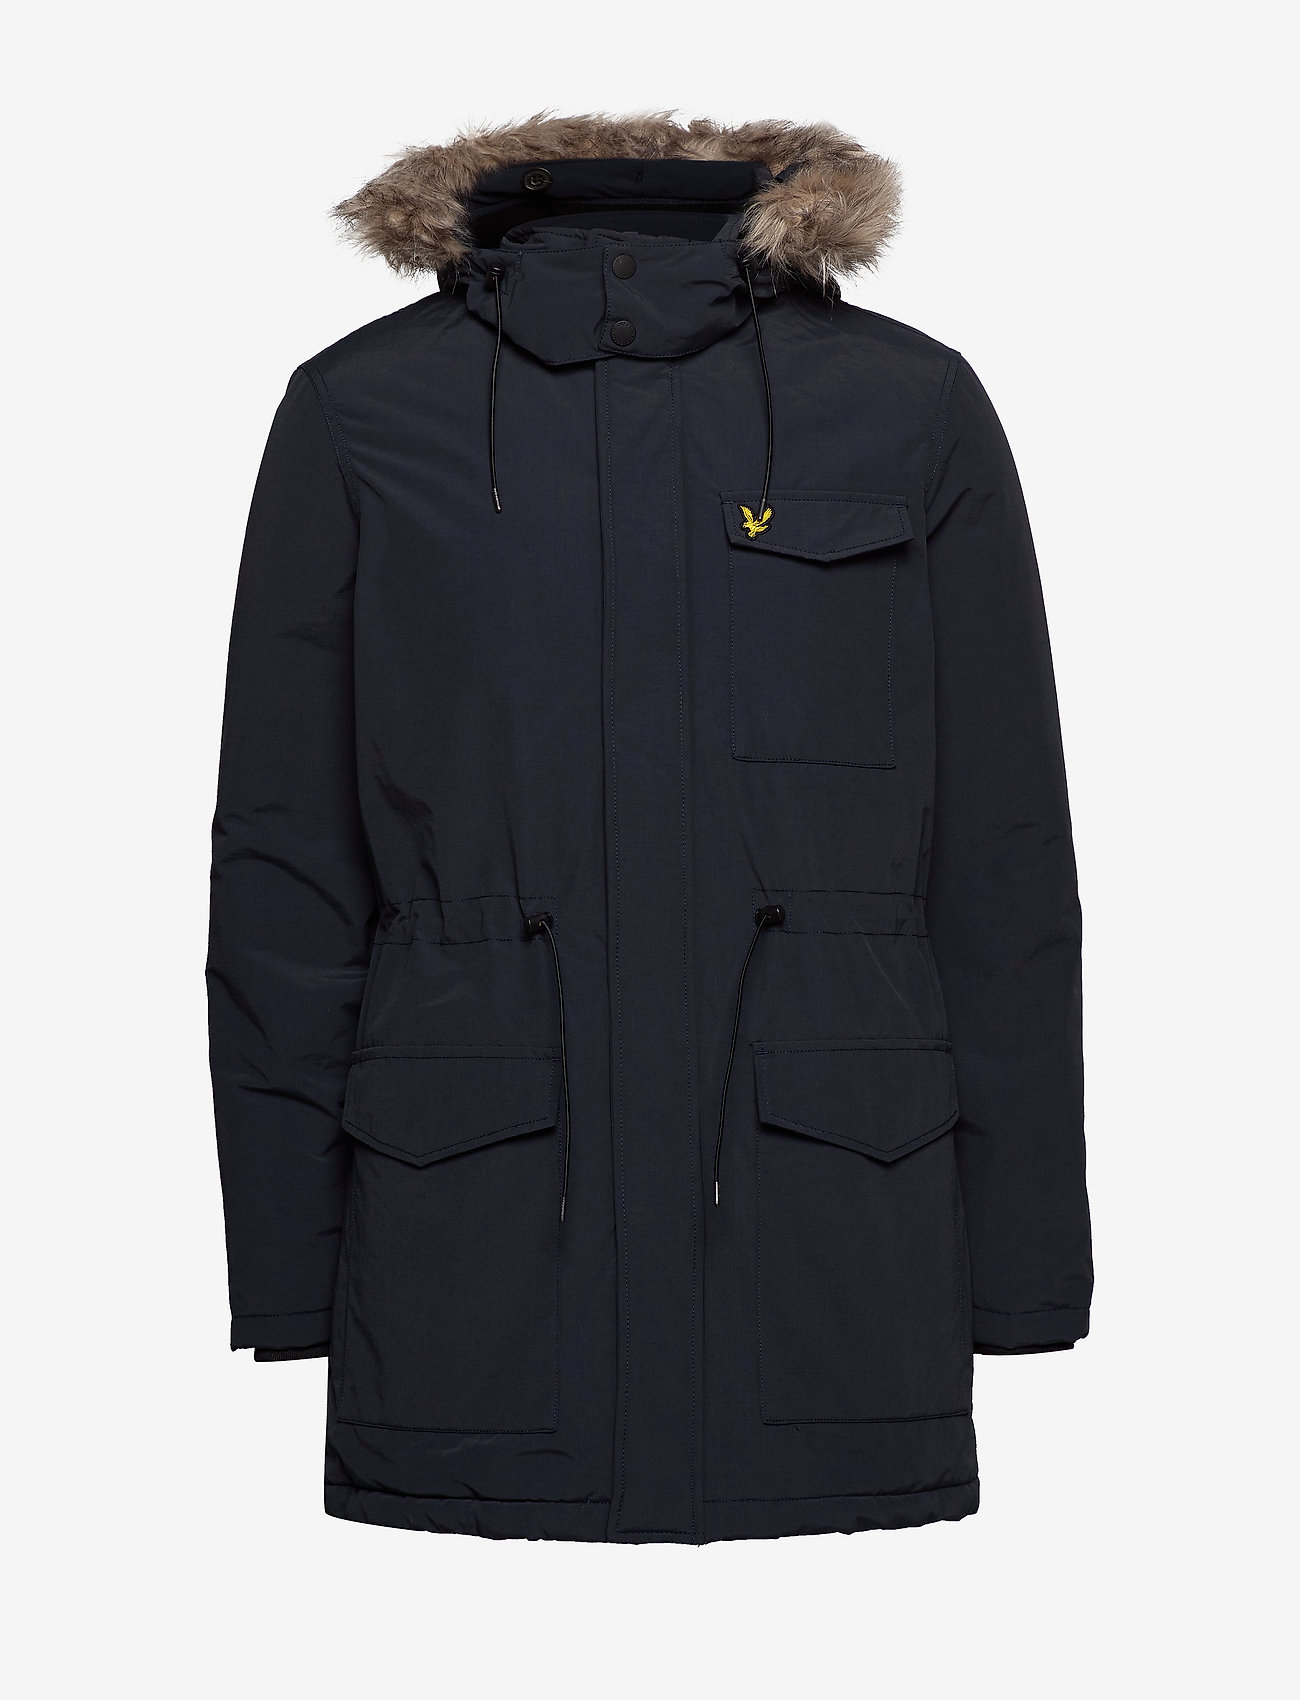 Lyle & Scott Winter Weight Microfleece Jacket - Jakker og frakker DARK NAVY - Menn Klær